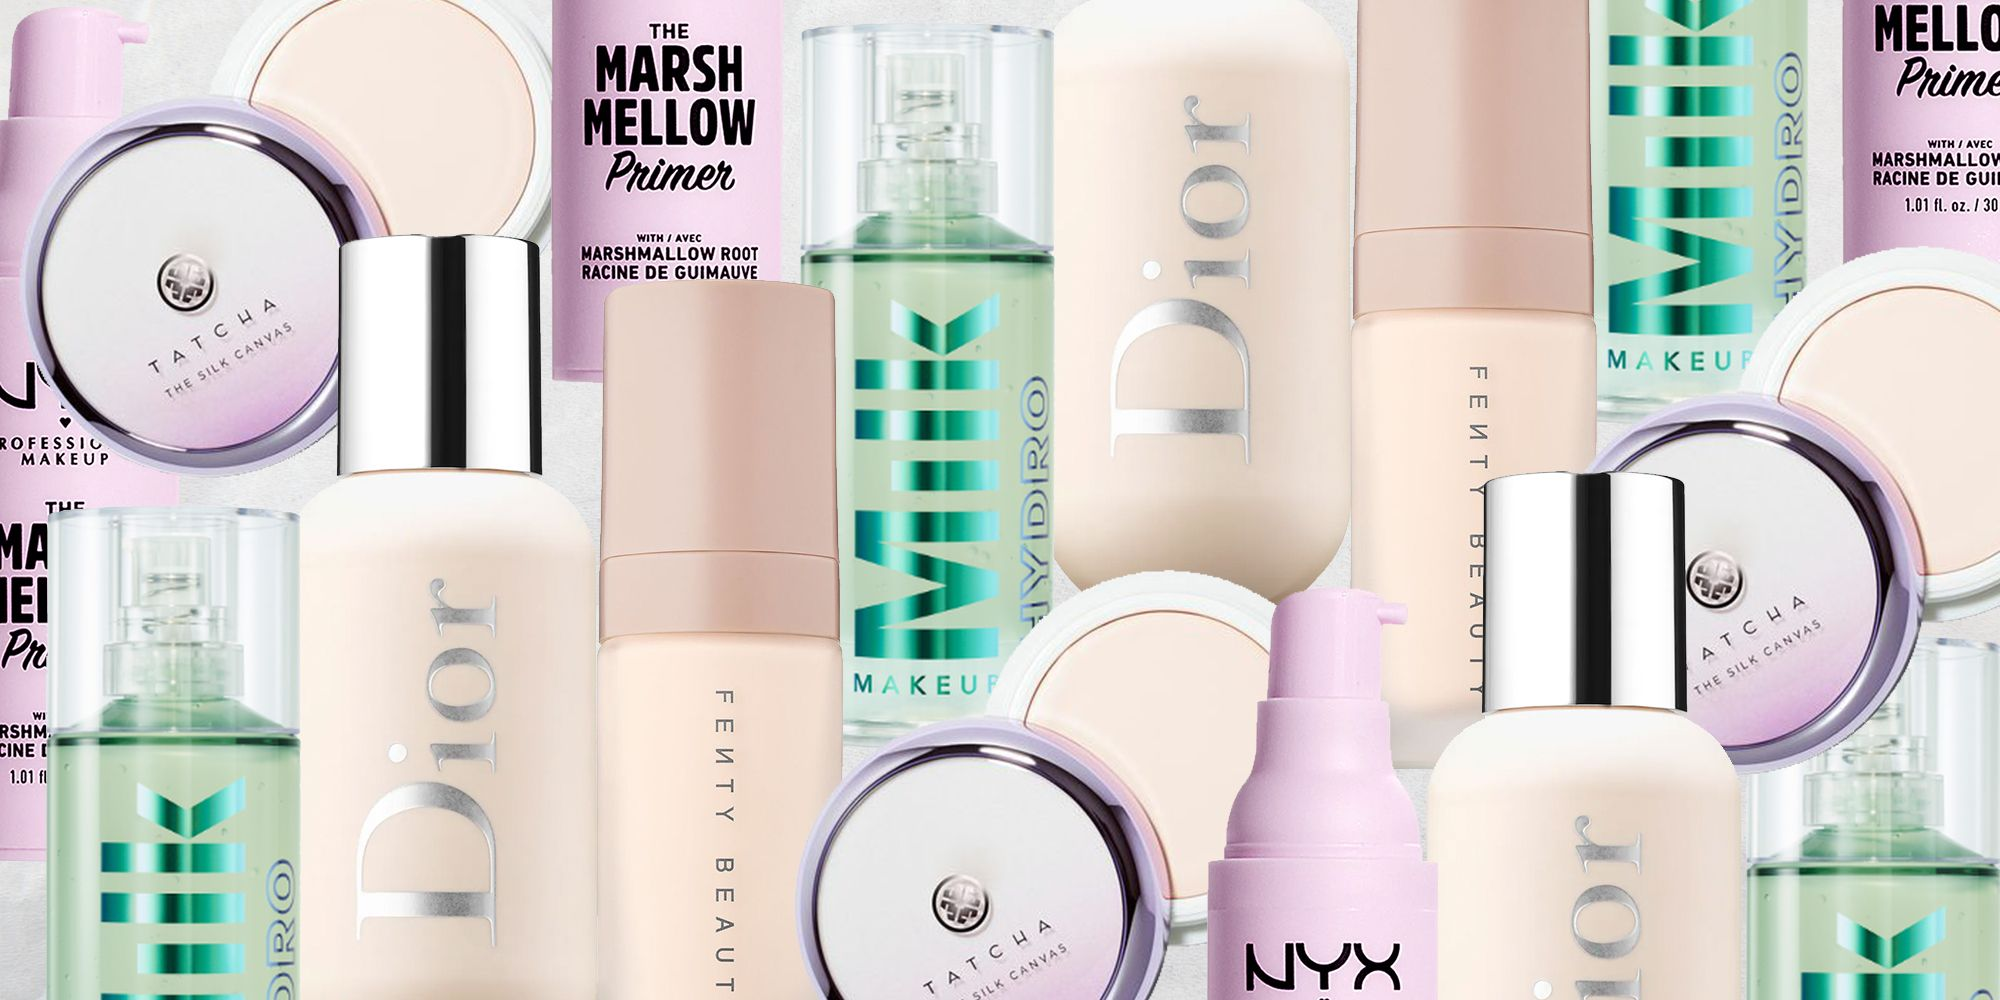 The 9 Best Face Primers for a Great Makeup Day